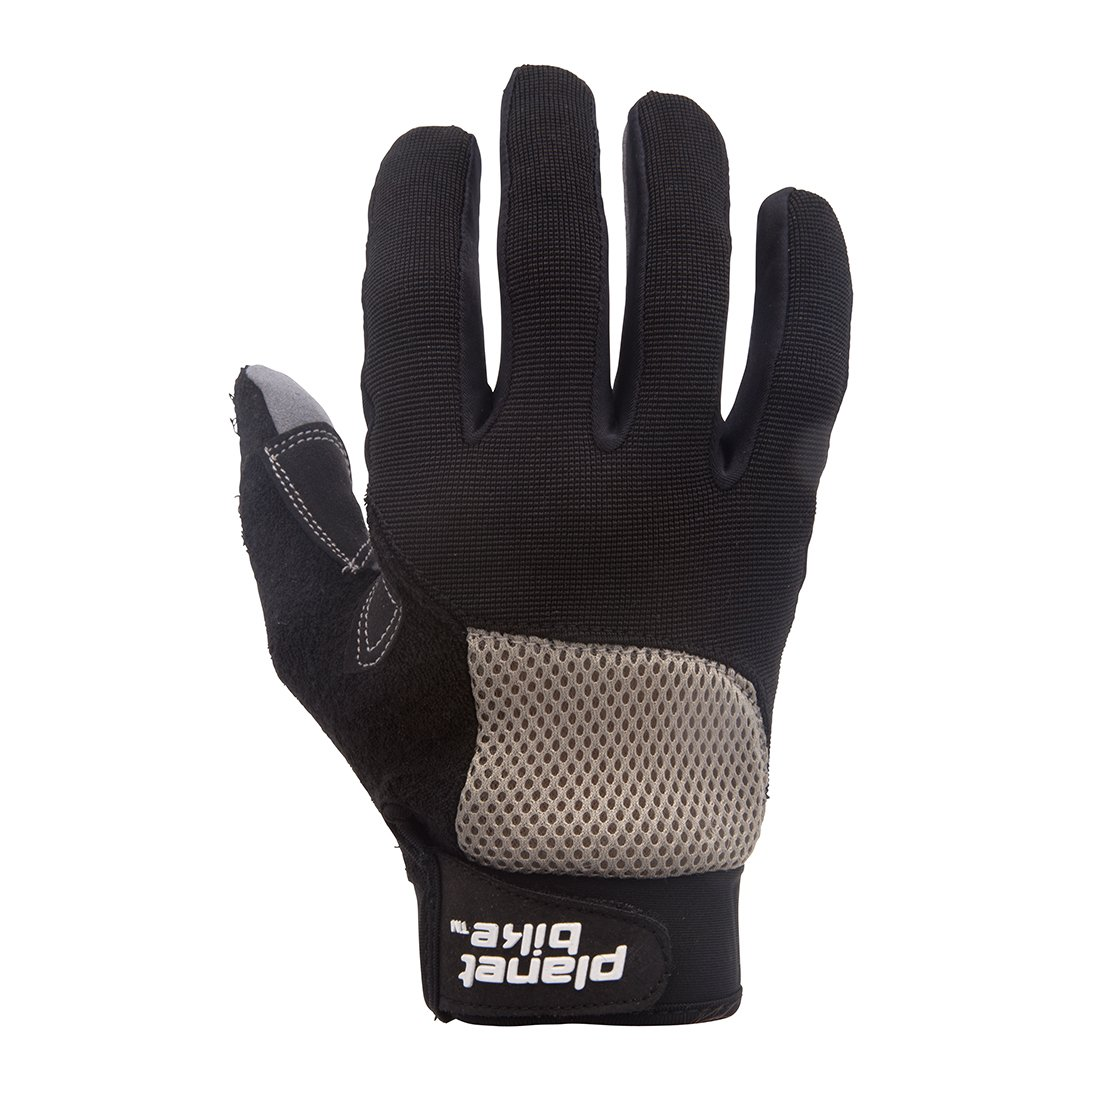 Planet Bike Orion Full Finger Cycling Gloves